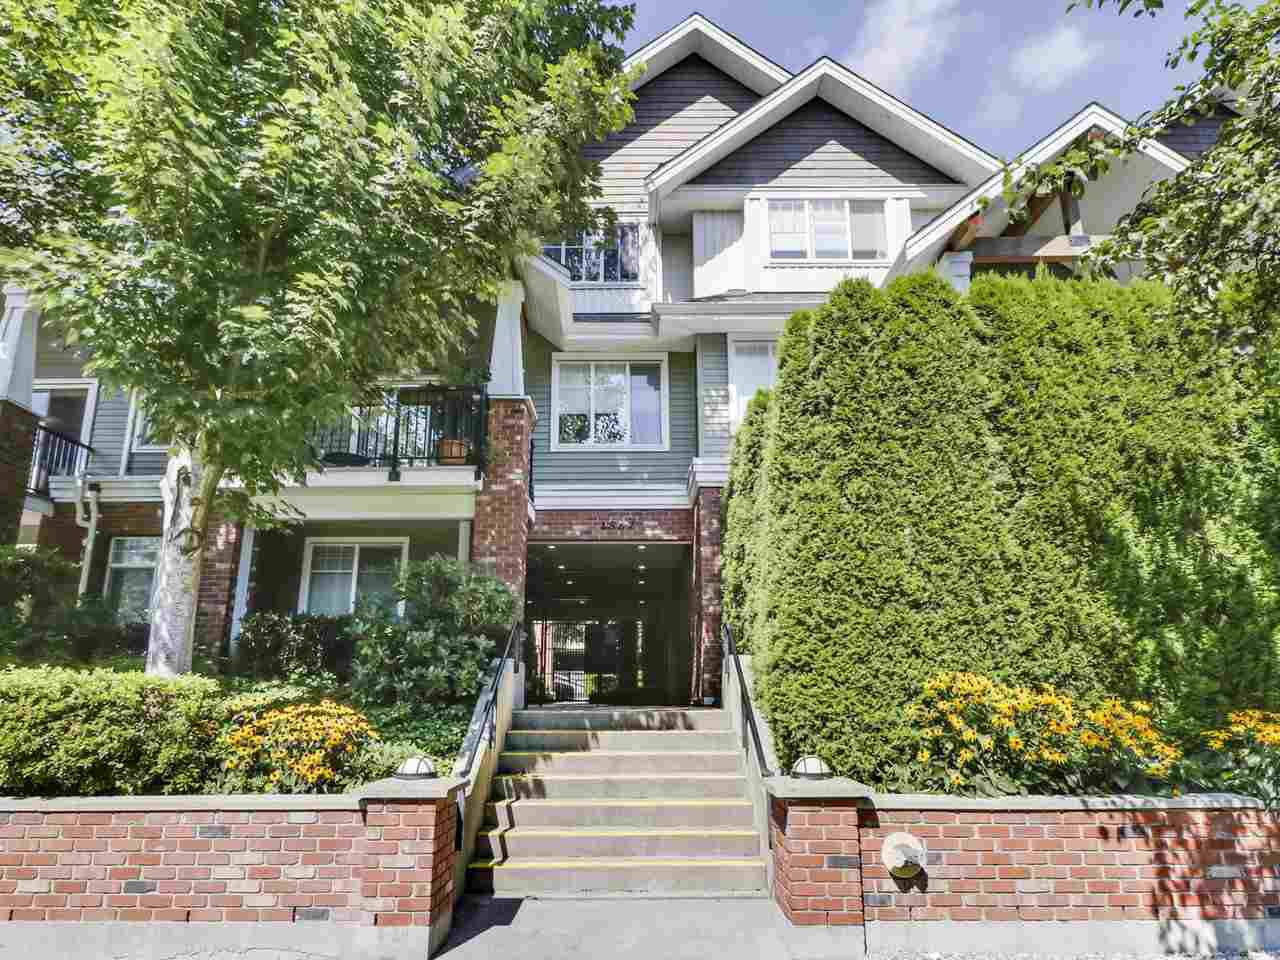 """Main Photo: 203 1567 GRANT Avenue in Port Coquitlam: Glenwood PQ Townhouse for sale in """"The Grant"""" : MLS®# R2513303"""